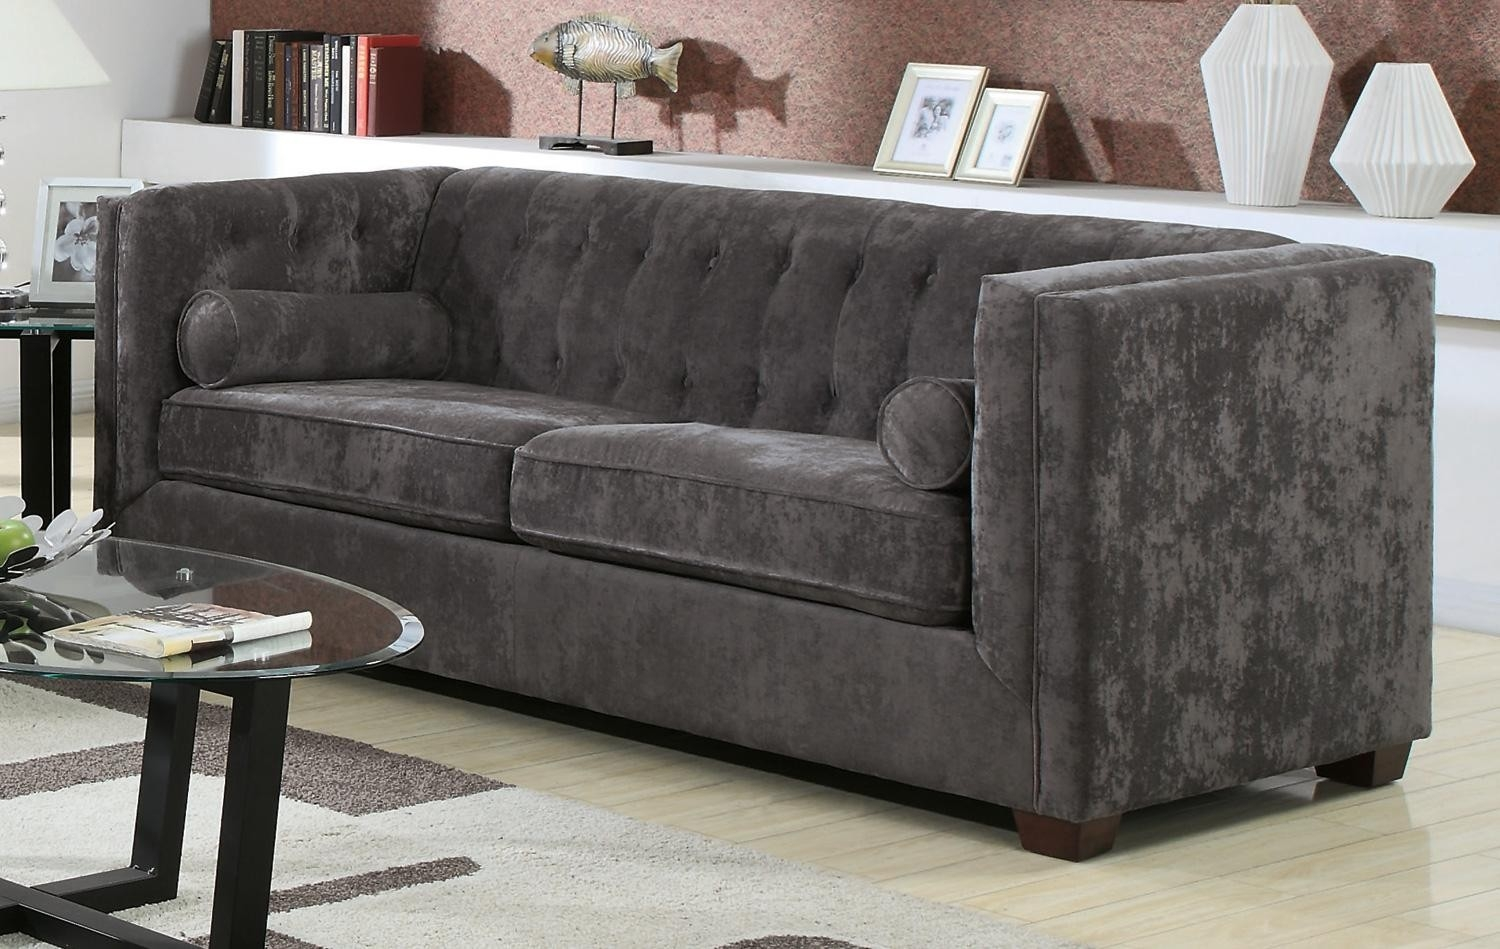 Charcoal Grey Sofa And Loveseat